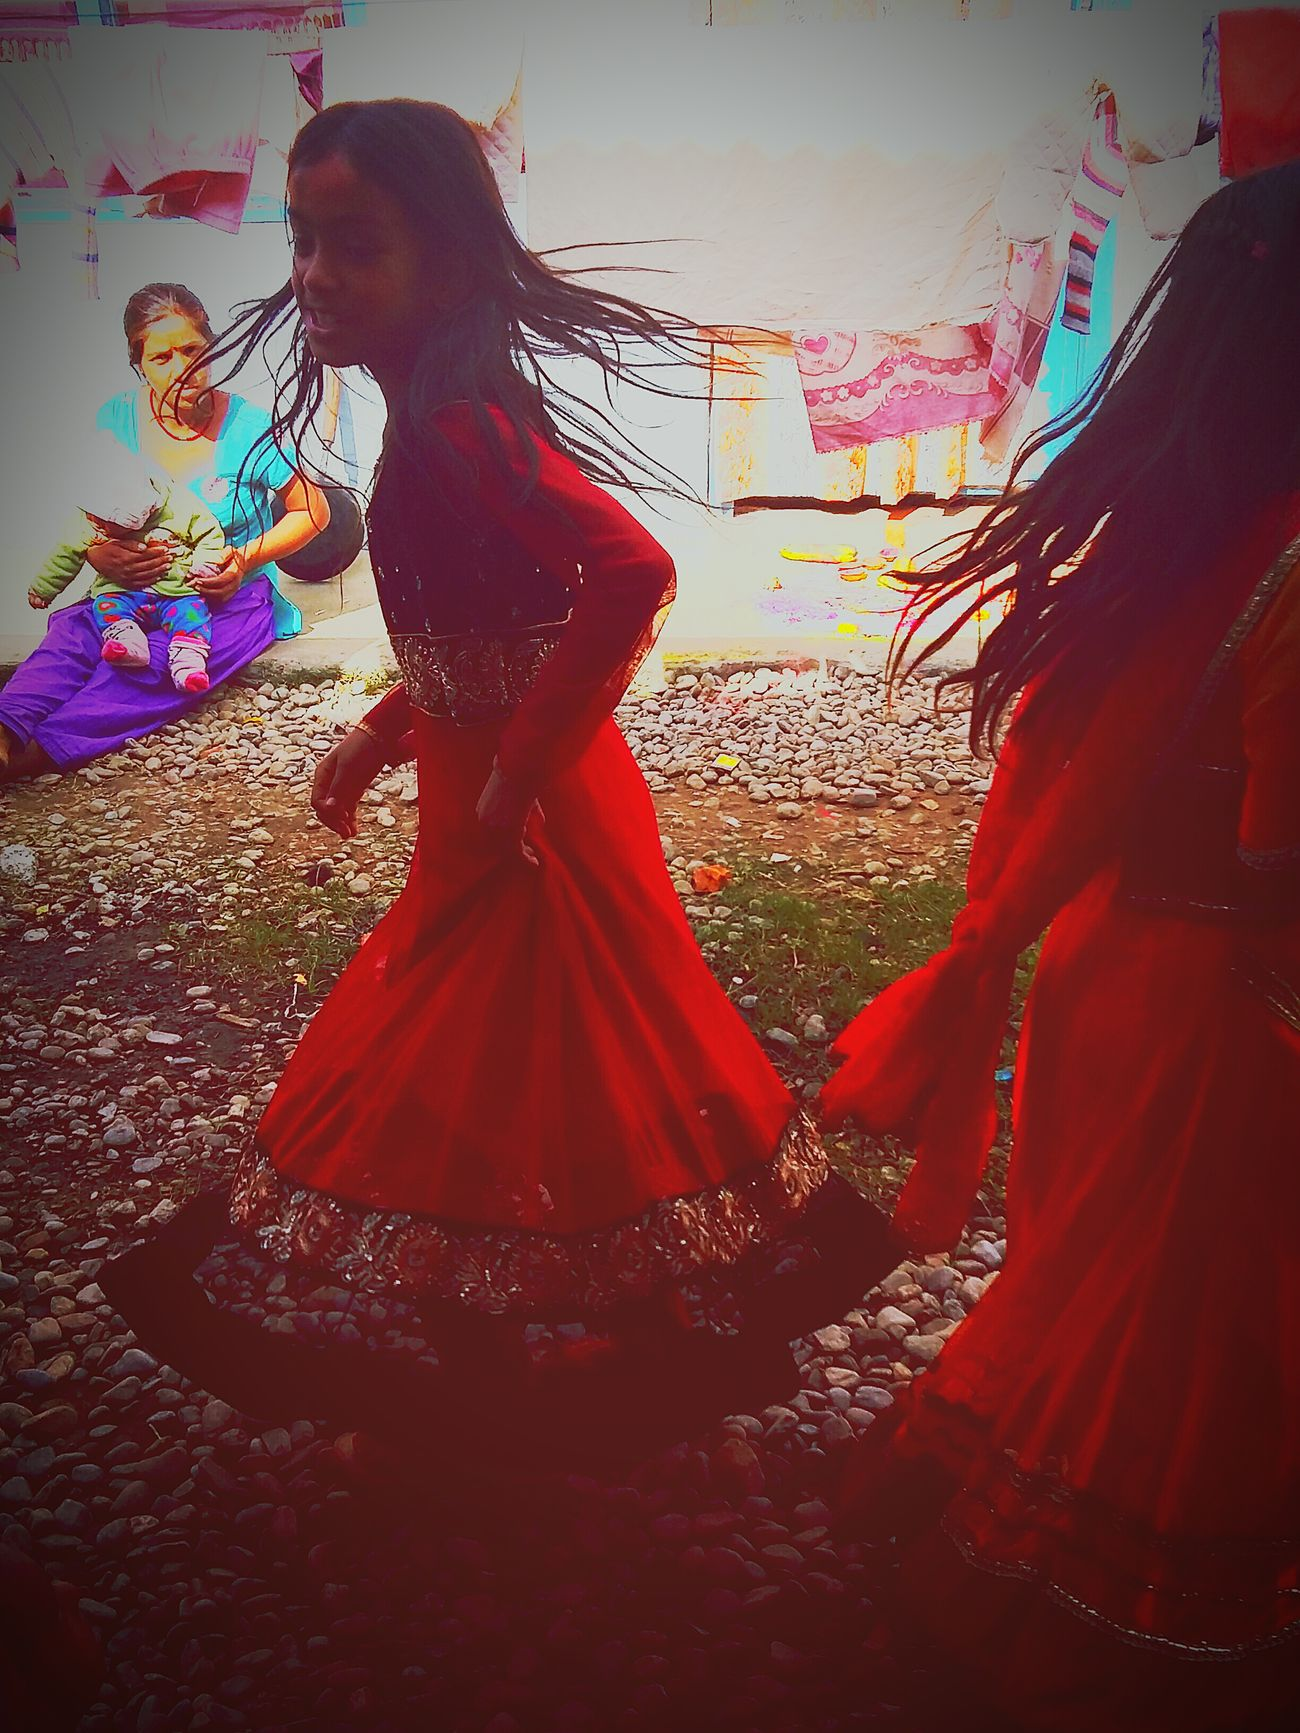 Pokhara, Nepal Life In Nepal Nepal Travel Nepaliculture Nepaligirls Lovely Pokhara Festivals Tihar Dancemusic Danceparty Dancers Colored Life In Colors Live Music Music Festival Music Time